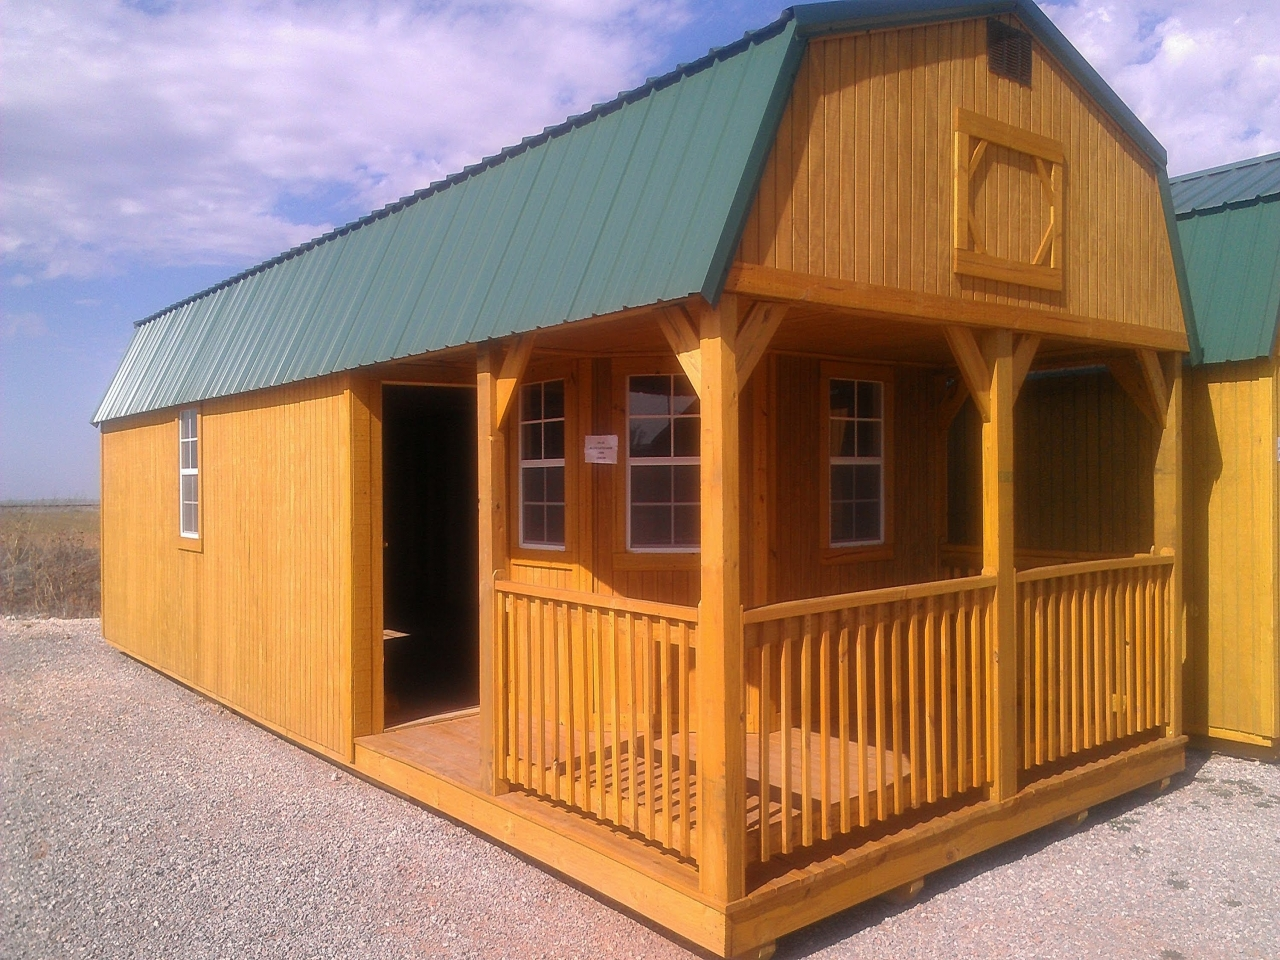 Do It Yourself Home Design: Tiny Victorian House Plans Small Cabins Tiny Houses, Homes